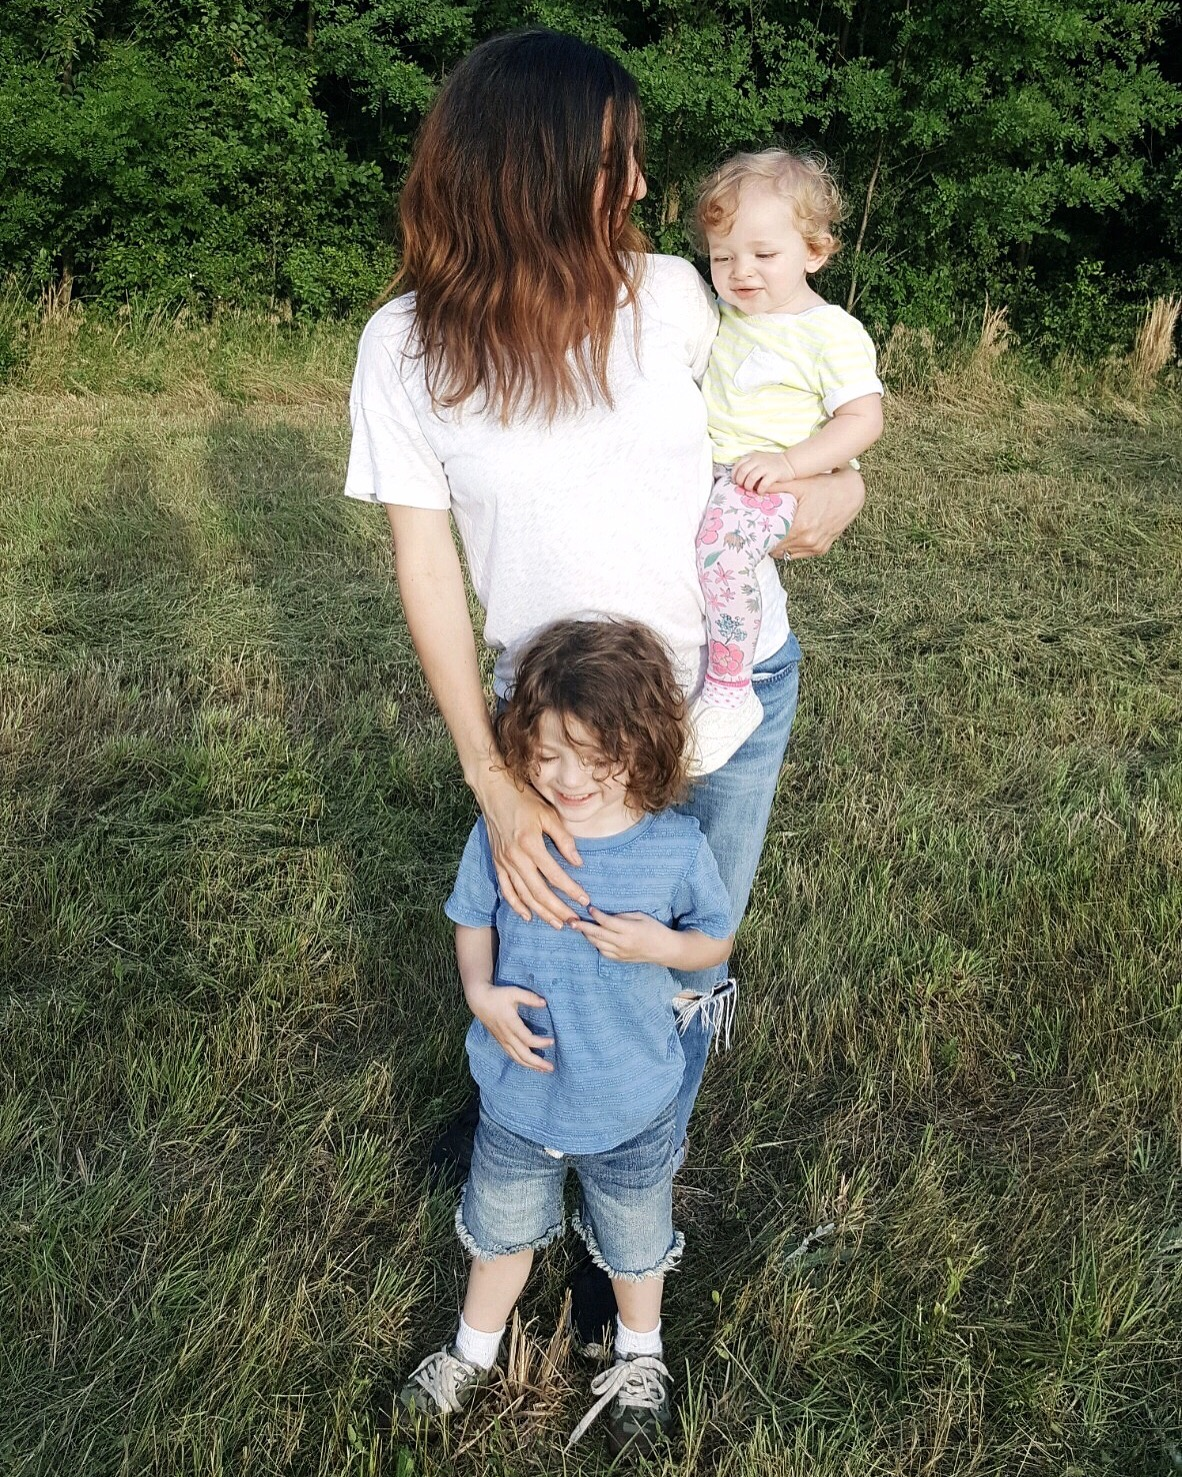 Choosing a non-toxic lifestyle for your family